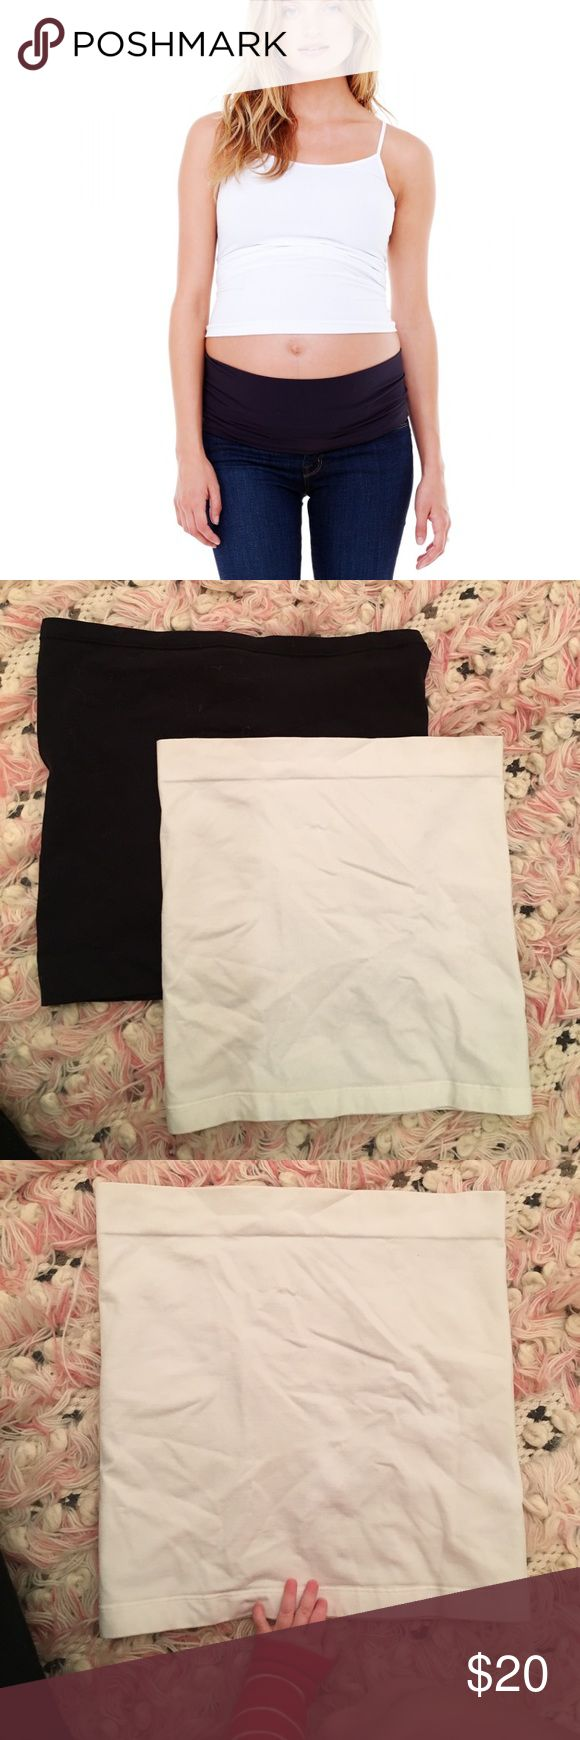 Original Bella Band black and white Original Bella Bands. One black and one white. Bother like new. Size 1. Please see image for sizing. Great for extra support, lengthening tops, and wearing pre pregnancy pants longer. Originally $28 each. Ingrid & Isabel Accessories Hosiery & Socks